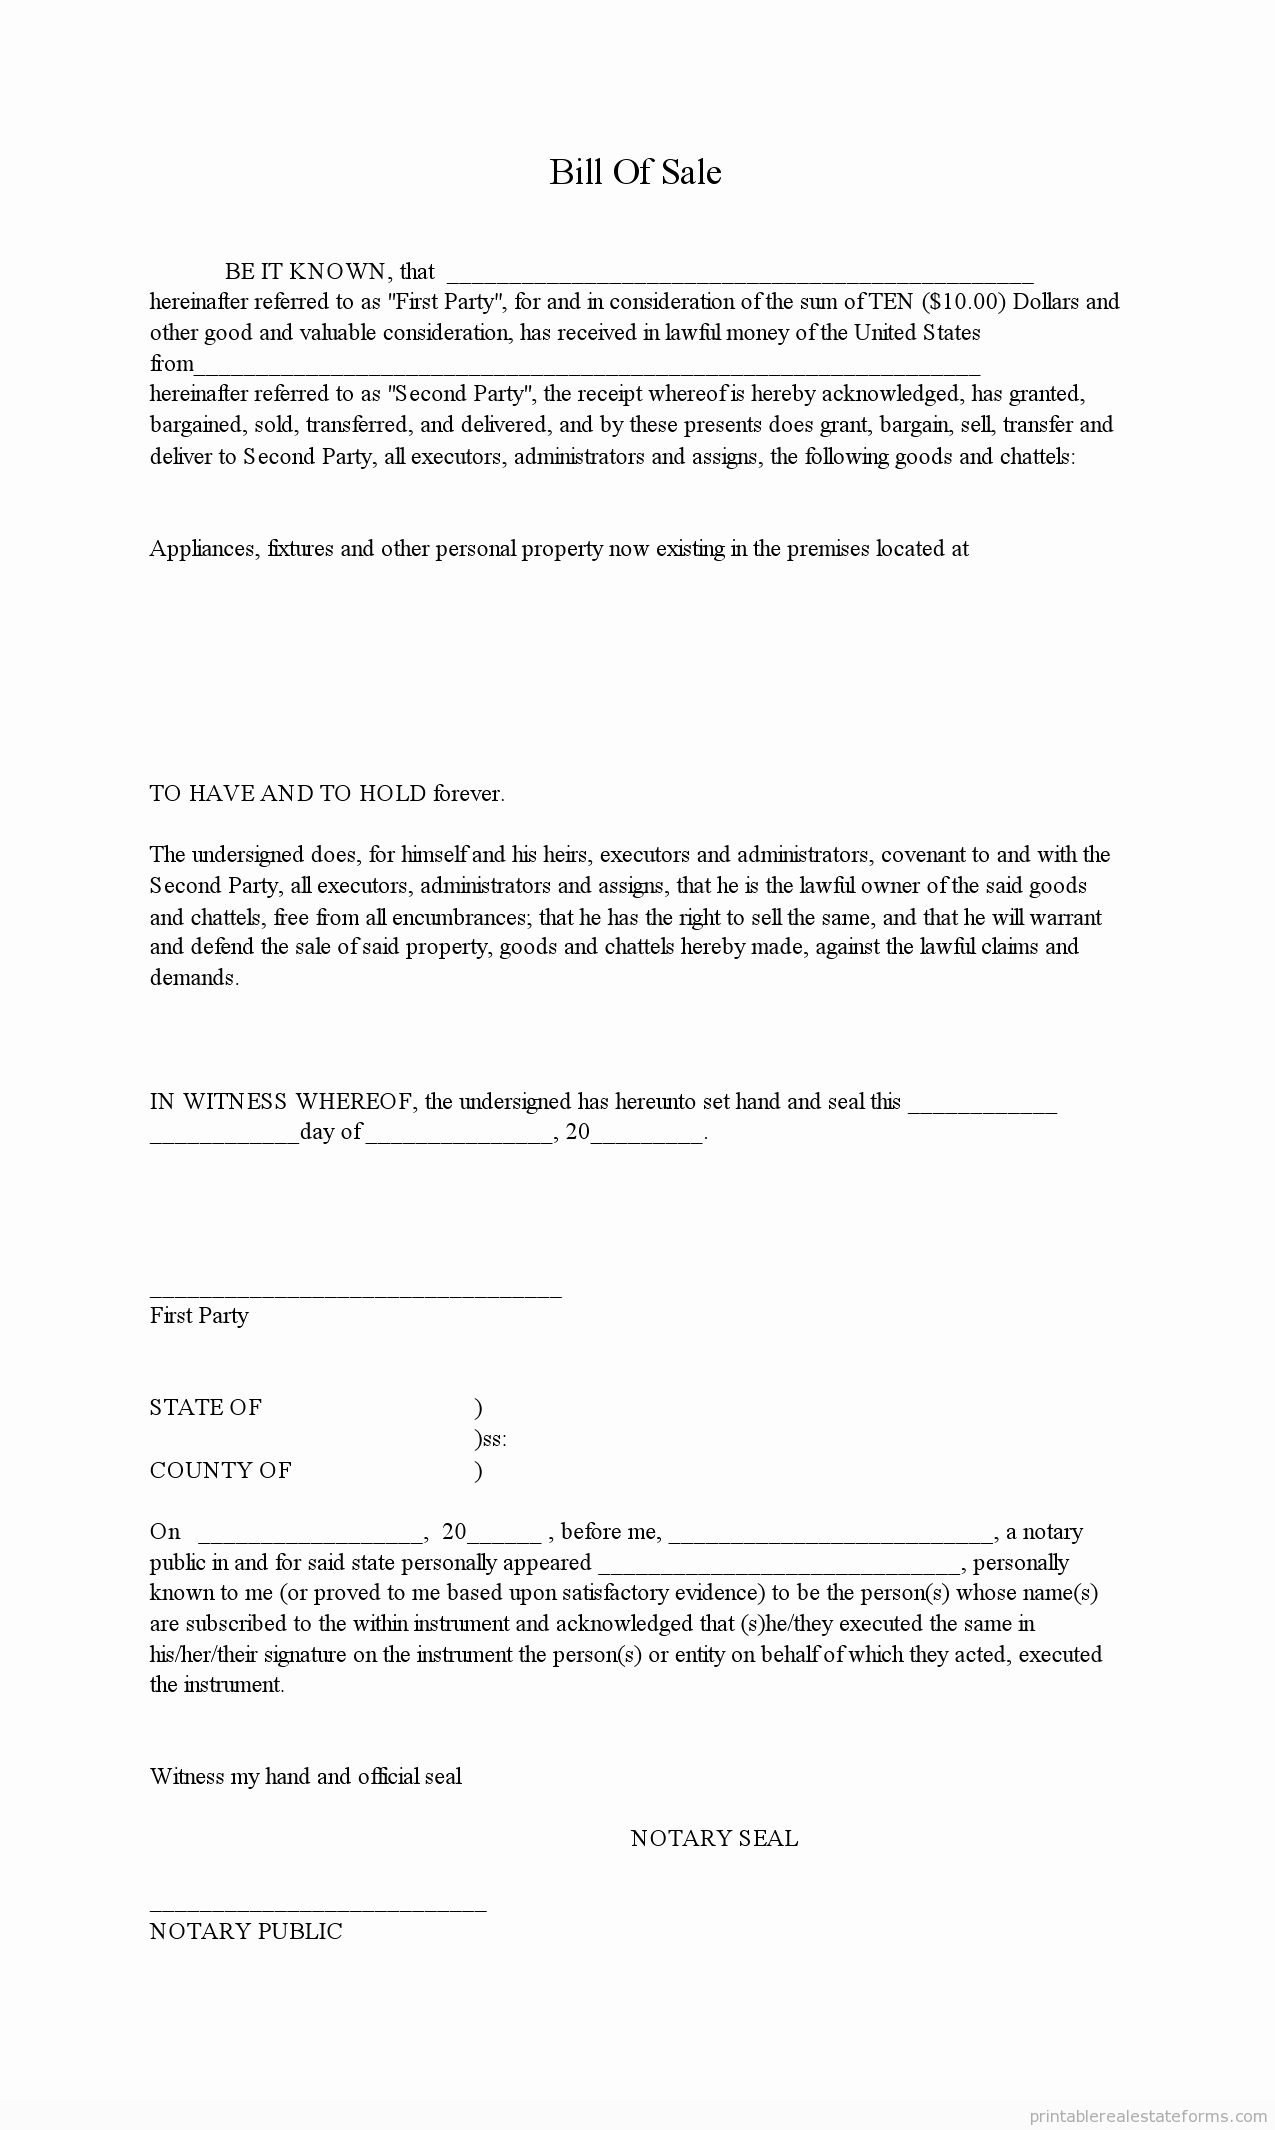 Free forms Bill Of Sale Elegant Free Bill Of Sale form Motorboat All Boats